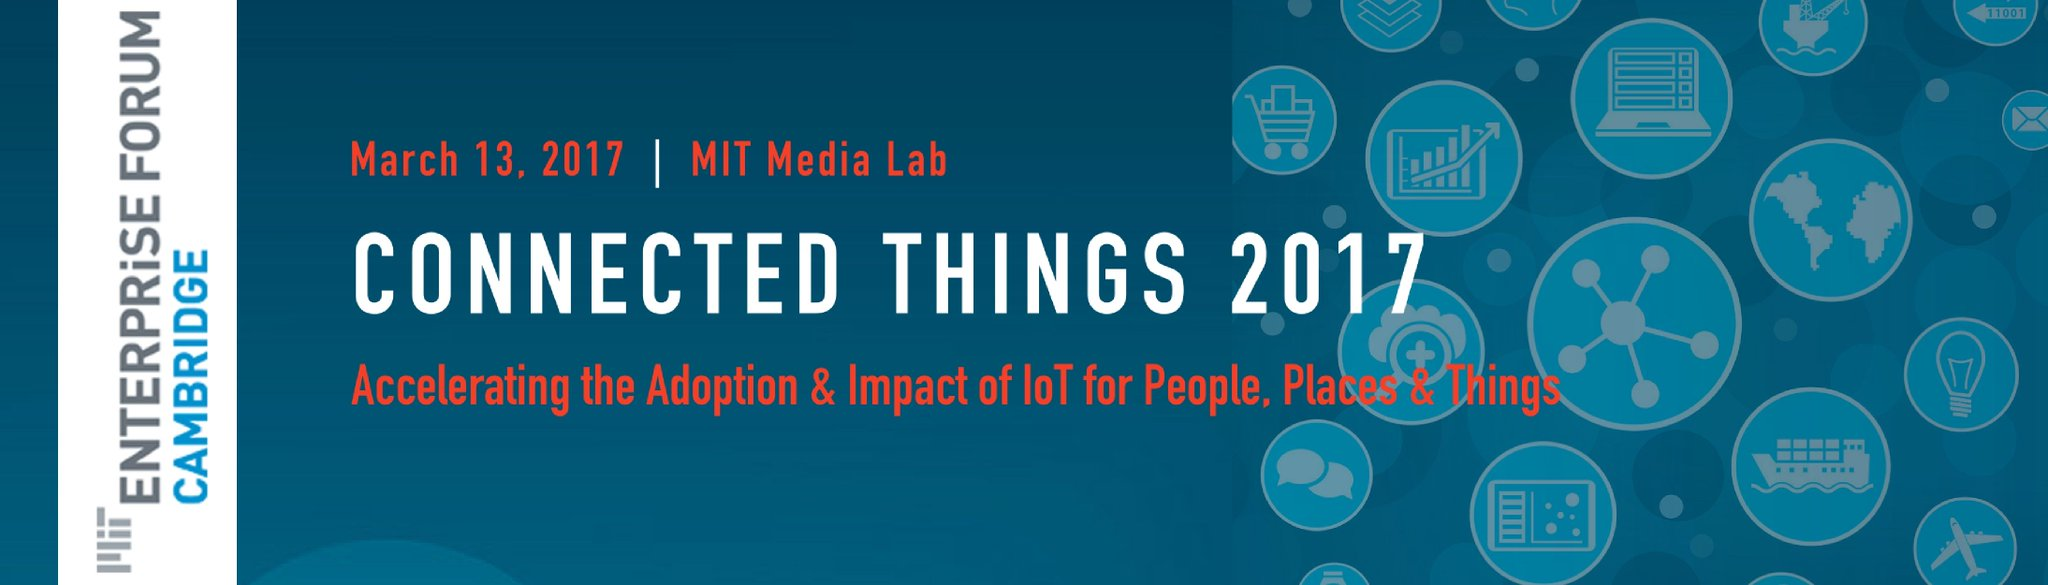 Today's #ConnectedThings2017 Full Conference Agenda is available here: https://t.co/PEIHJvpTgv https://t.co/8bAyMeO2nQ